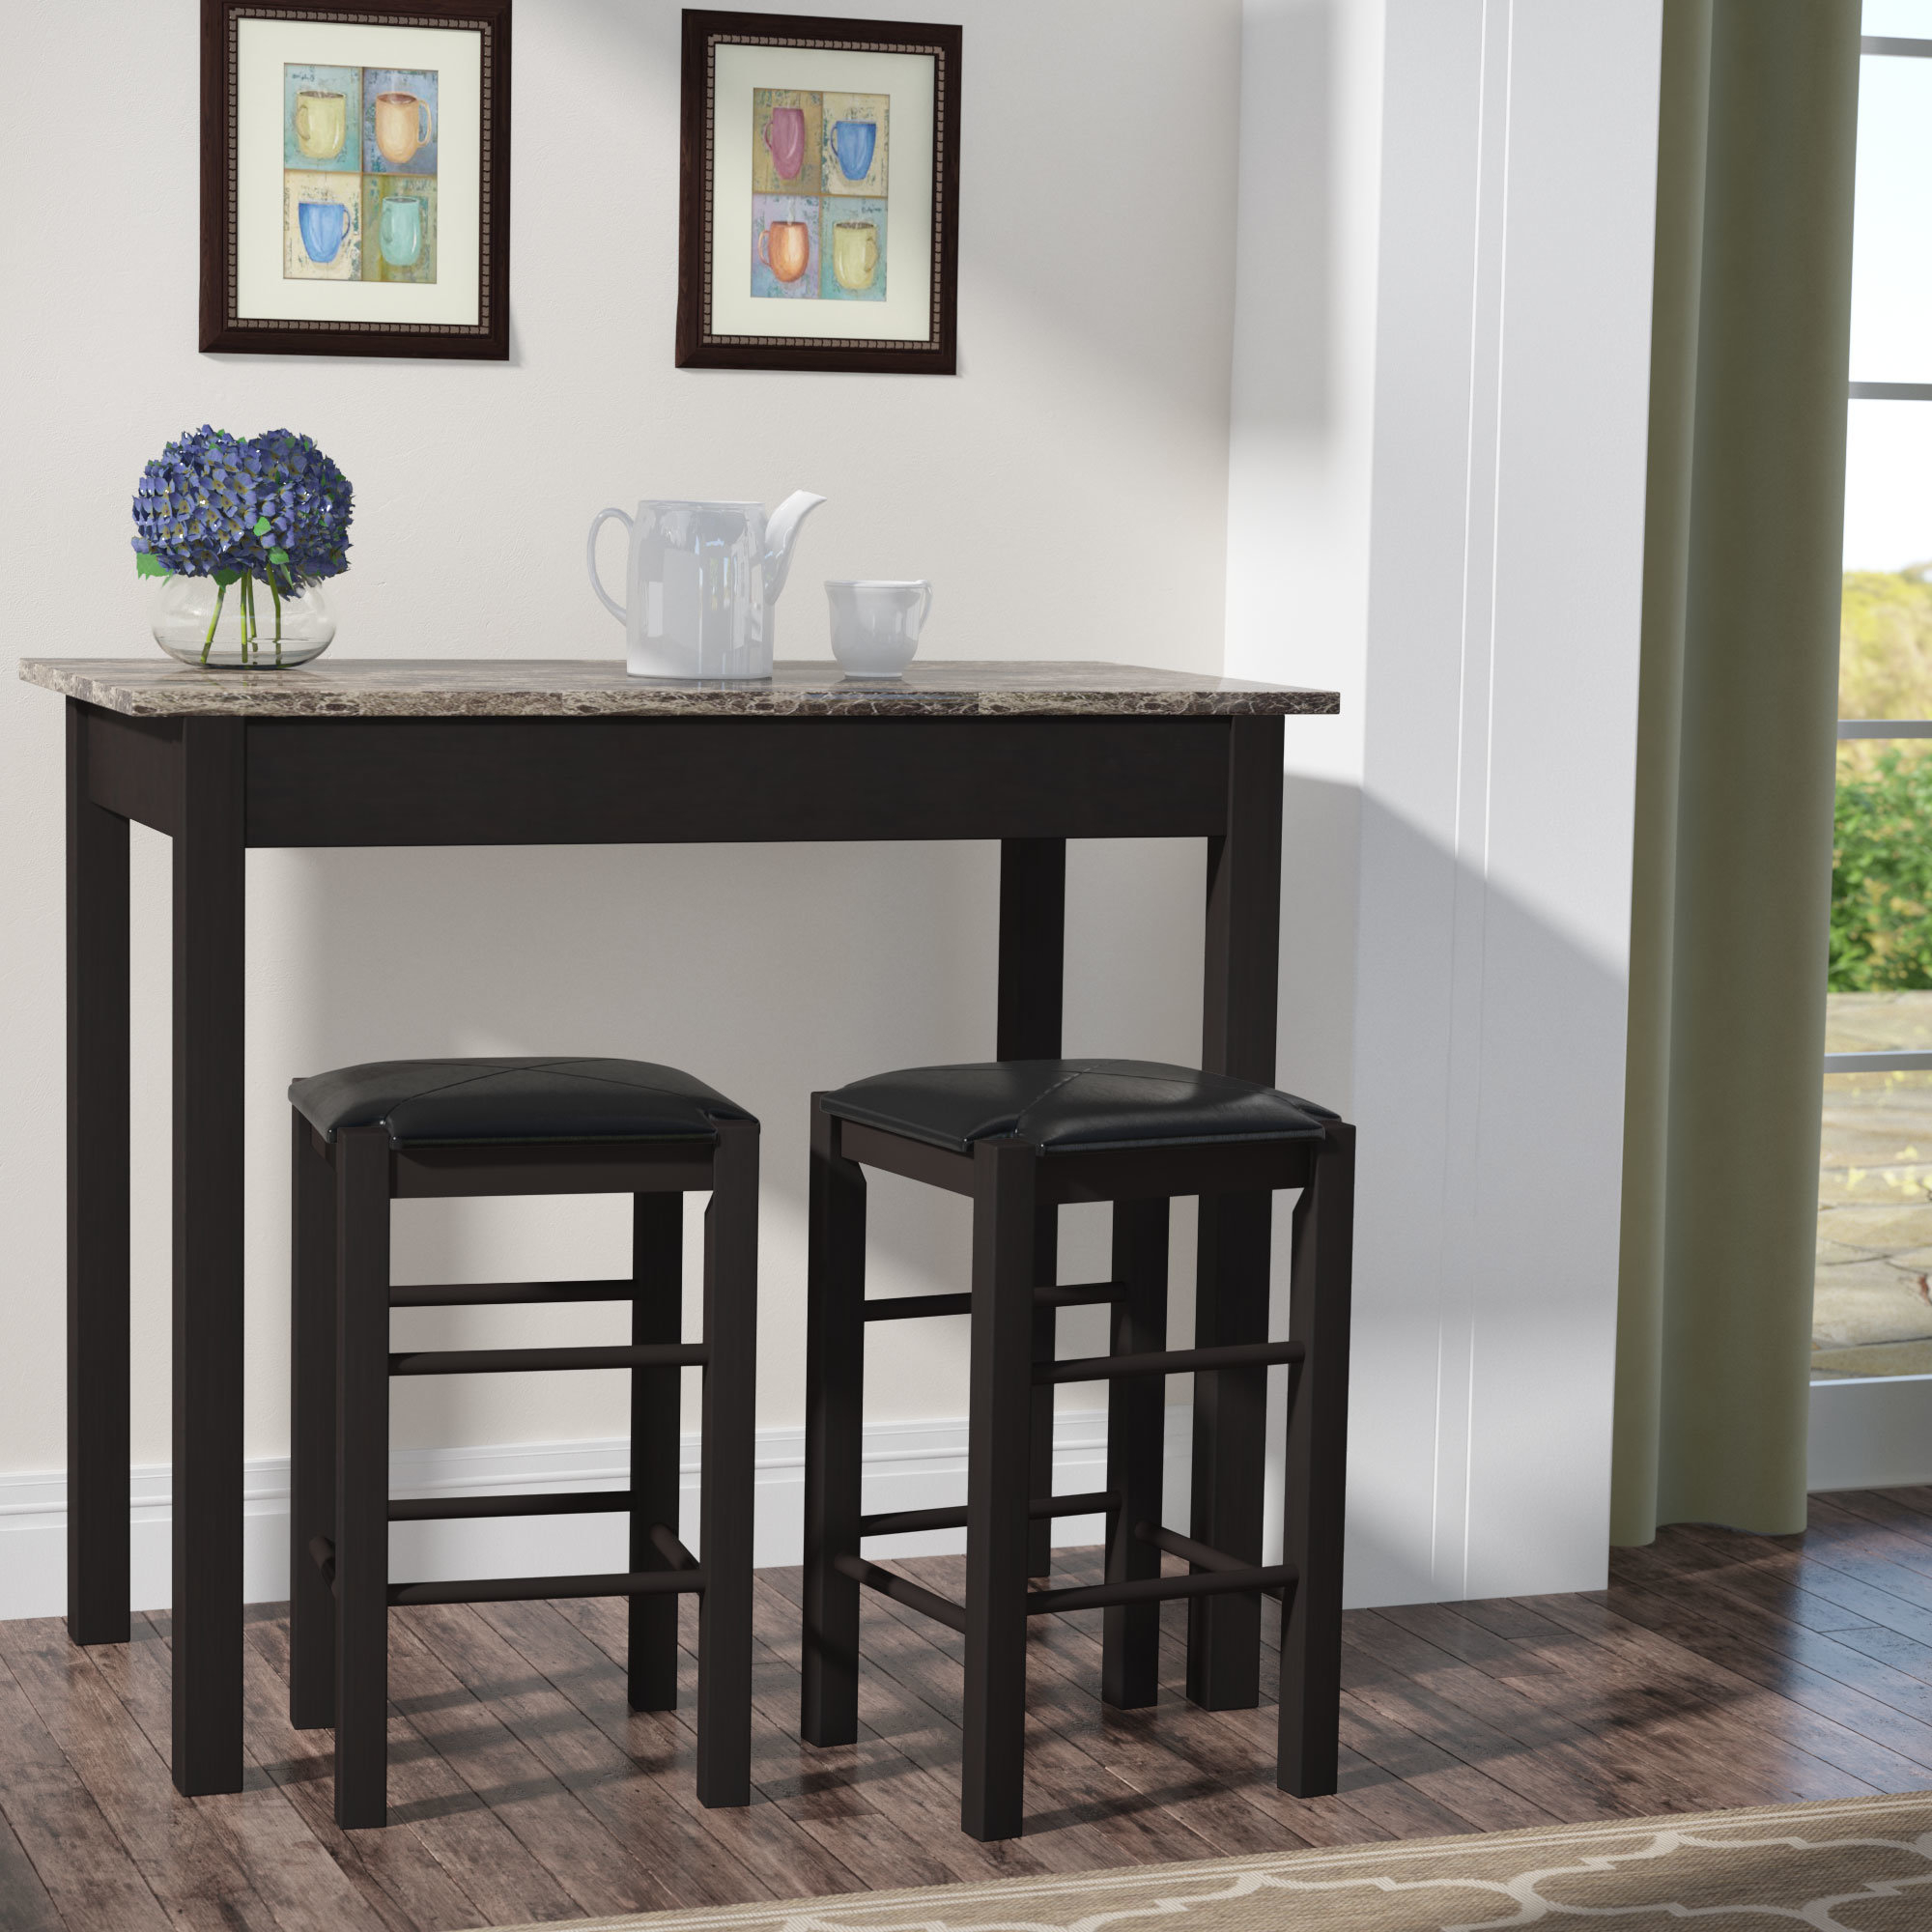 Widely Used Winston Porter Sheetz 3 Piece Counter Height Dining Set & Reviews With Regard To Mitzel 3 Piece Dining Sets (View 14 of 20)